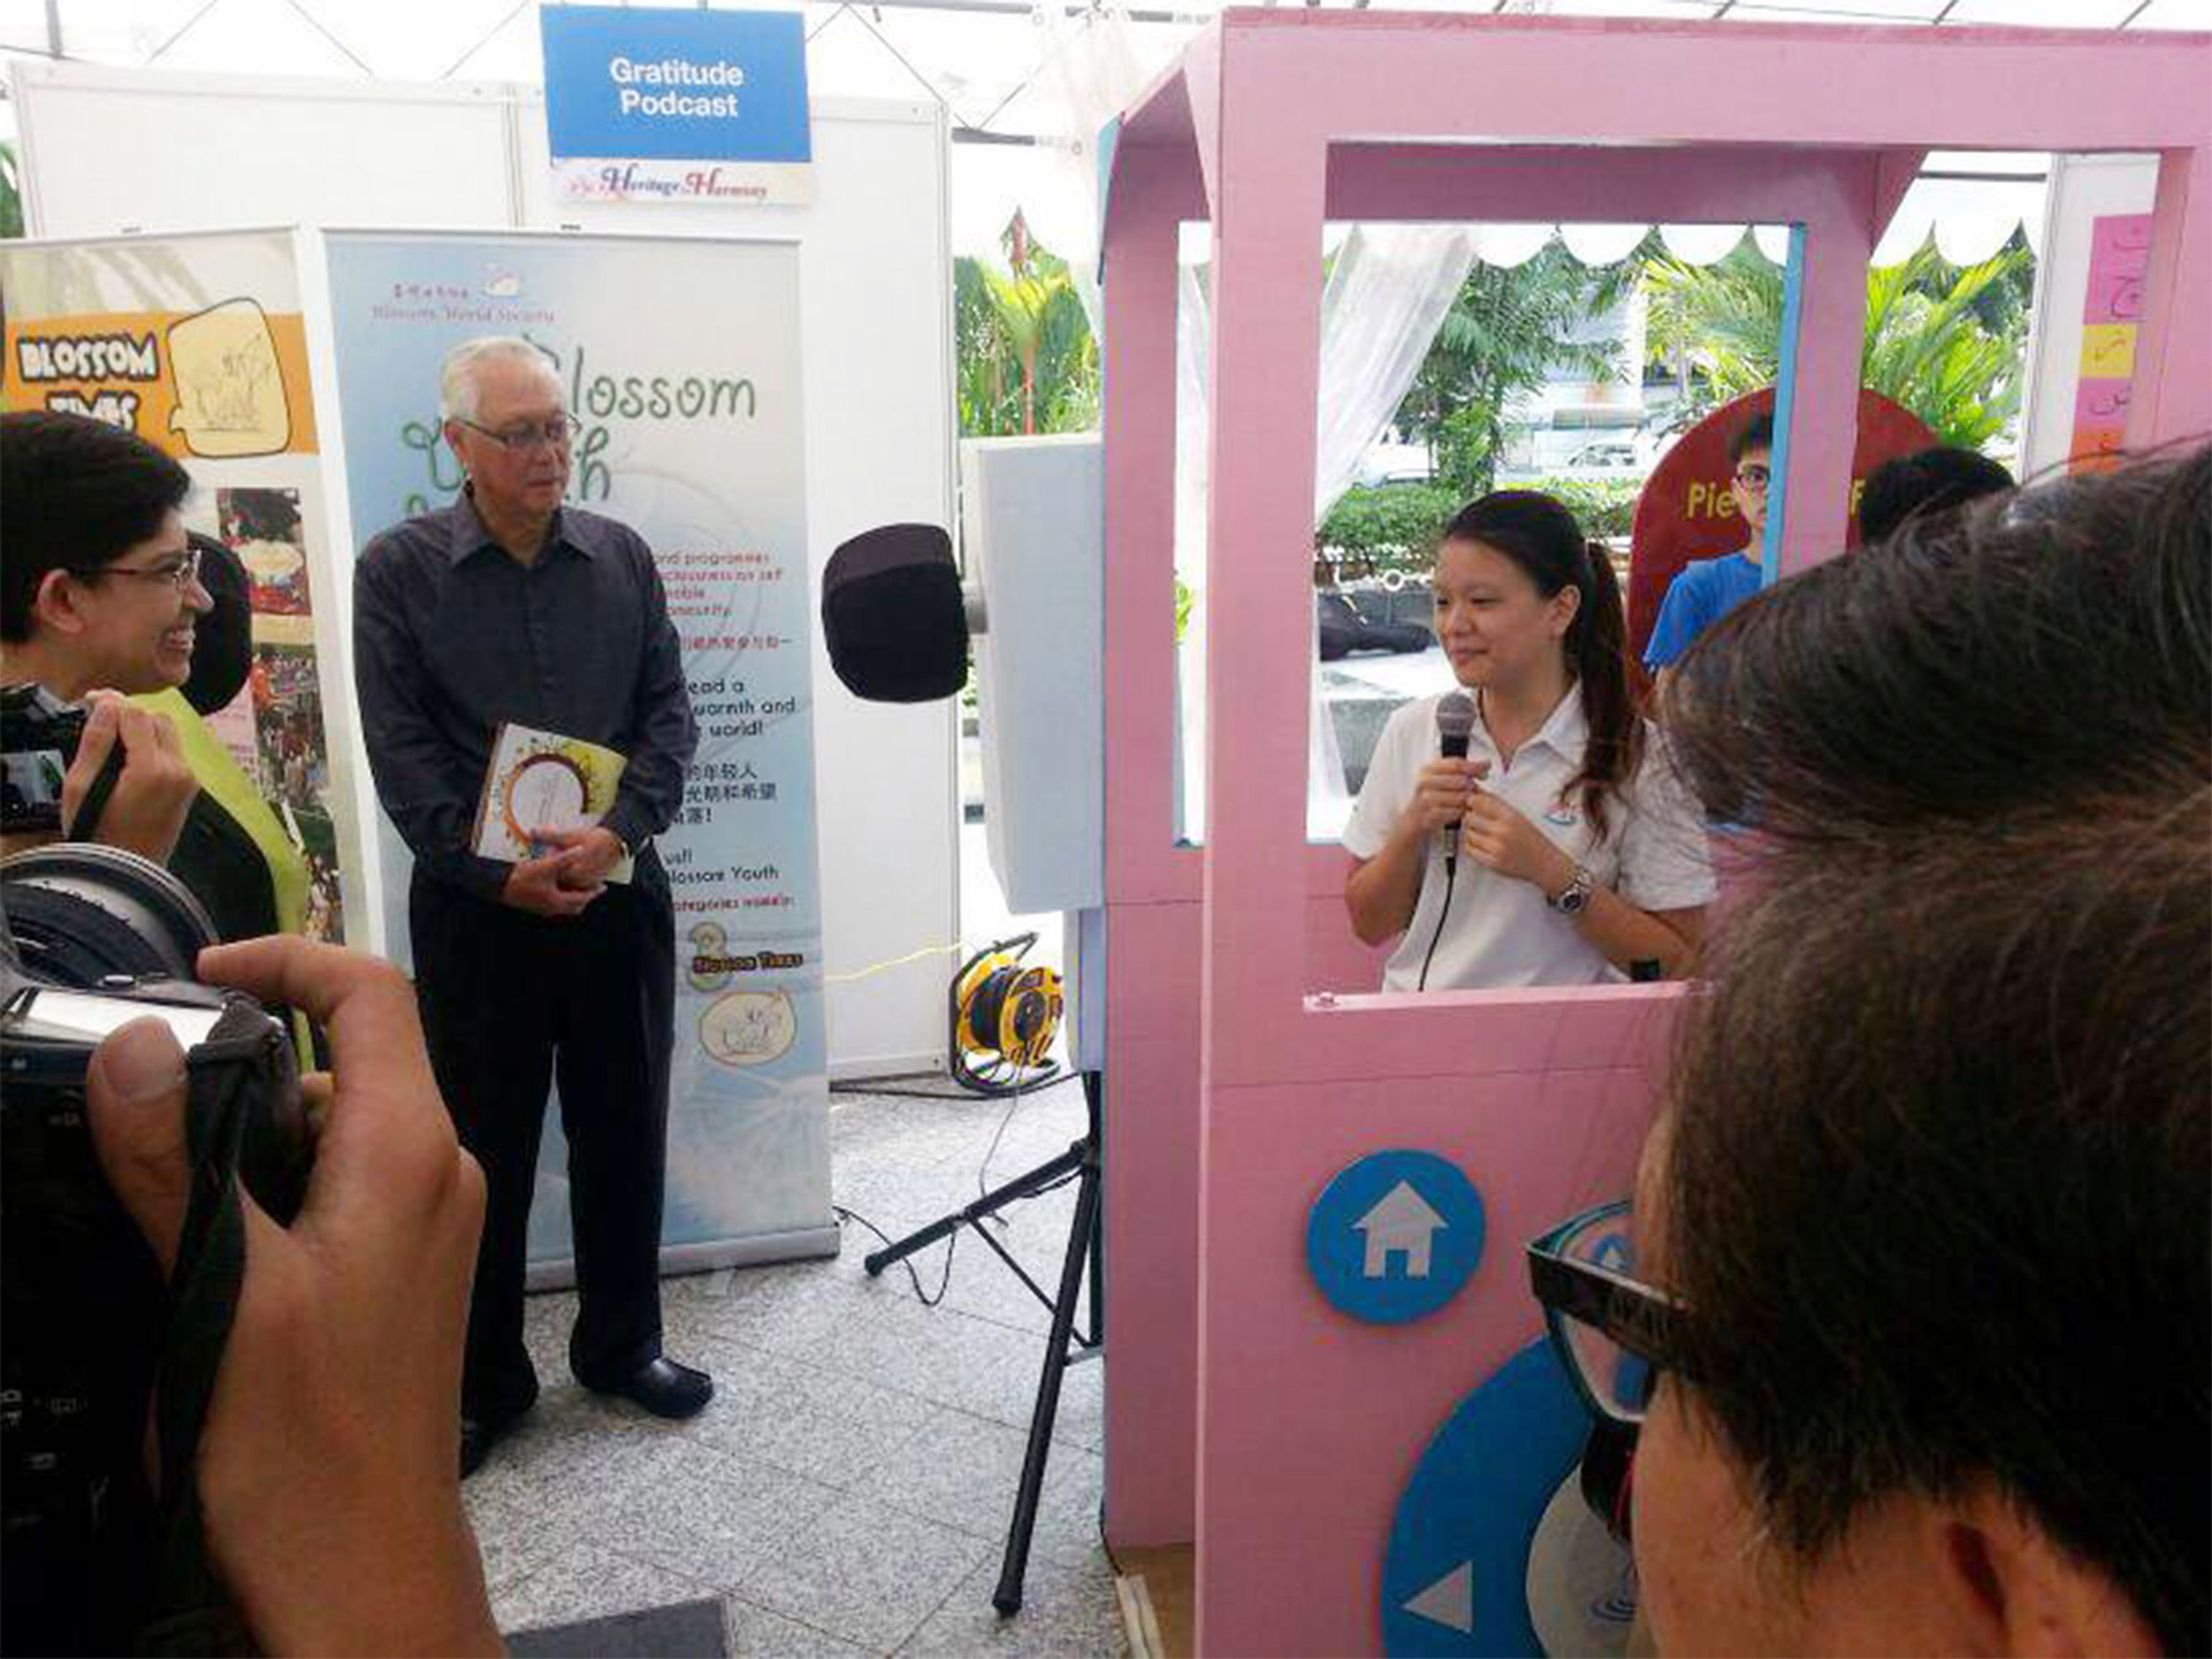 Our youth volunteer, Yan Xin, expressing her heartfelt gratitude to Mr Goh Chok Tong for his contribution to Singapore!